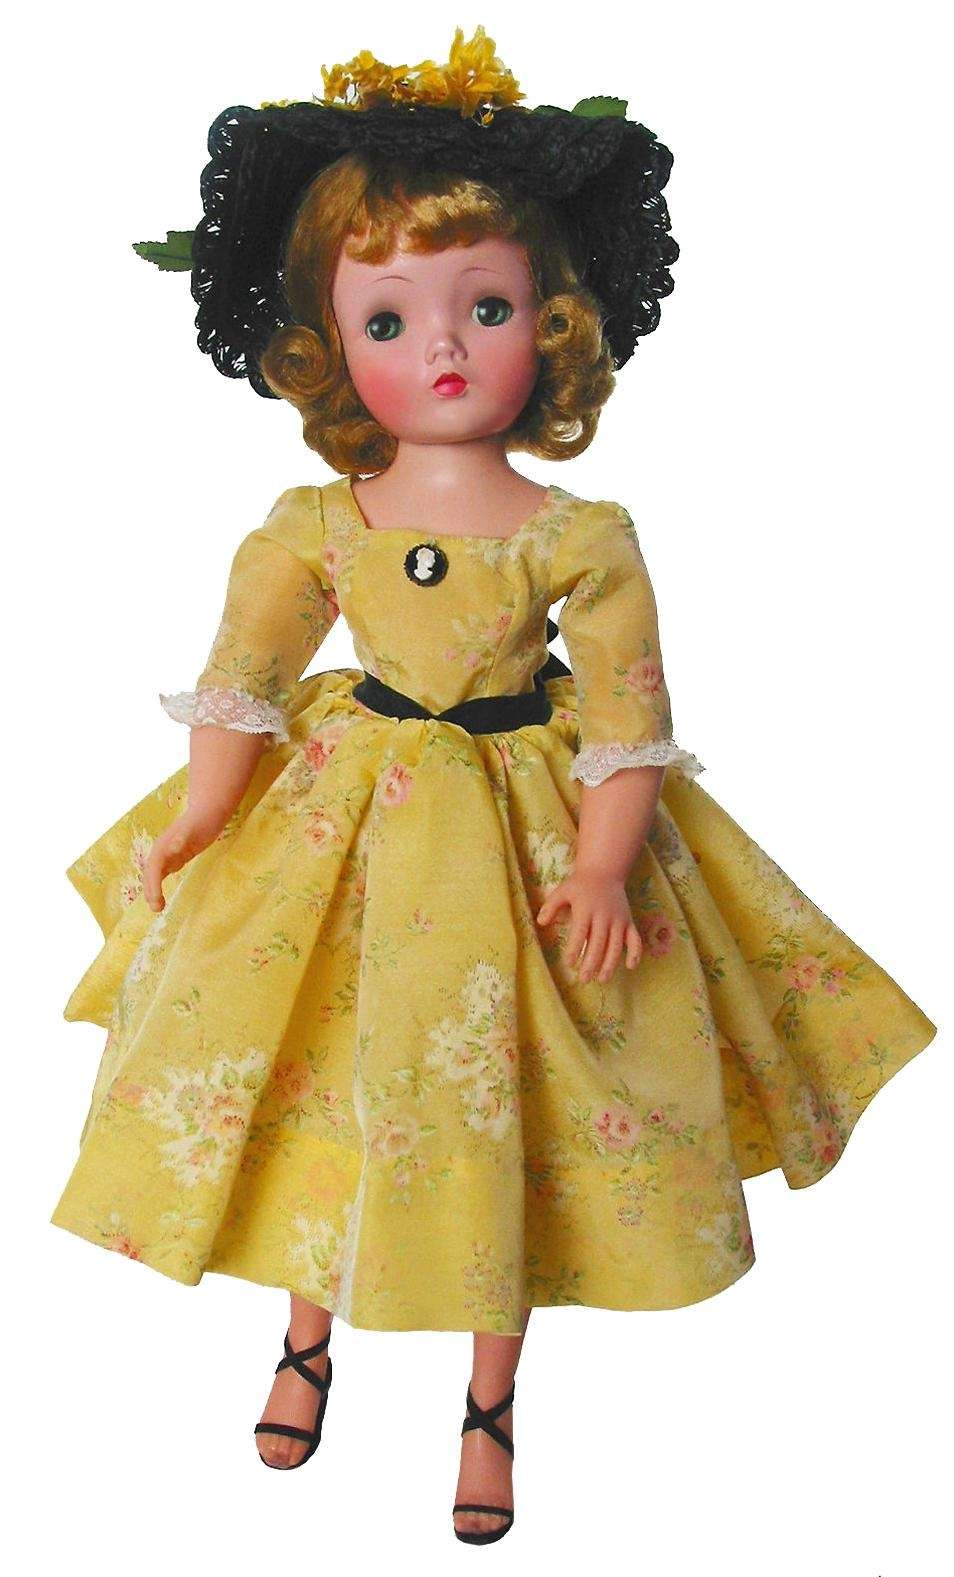 Madame Alexander dolls were the first to have